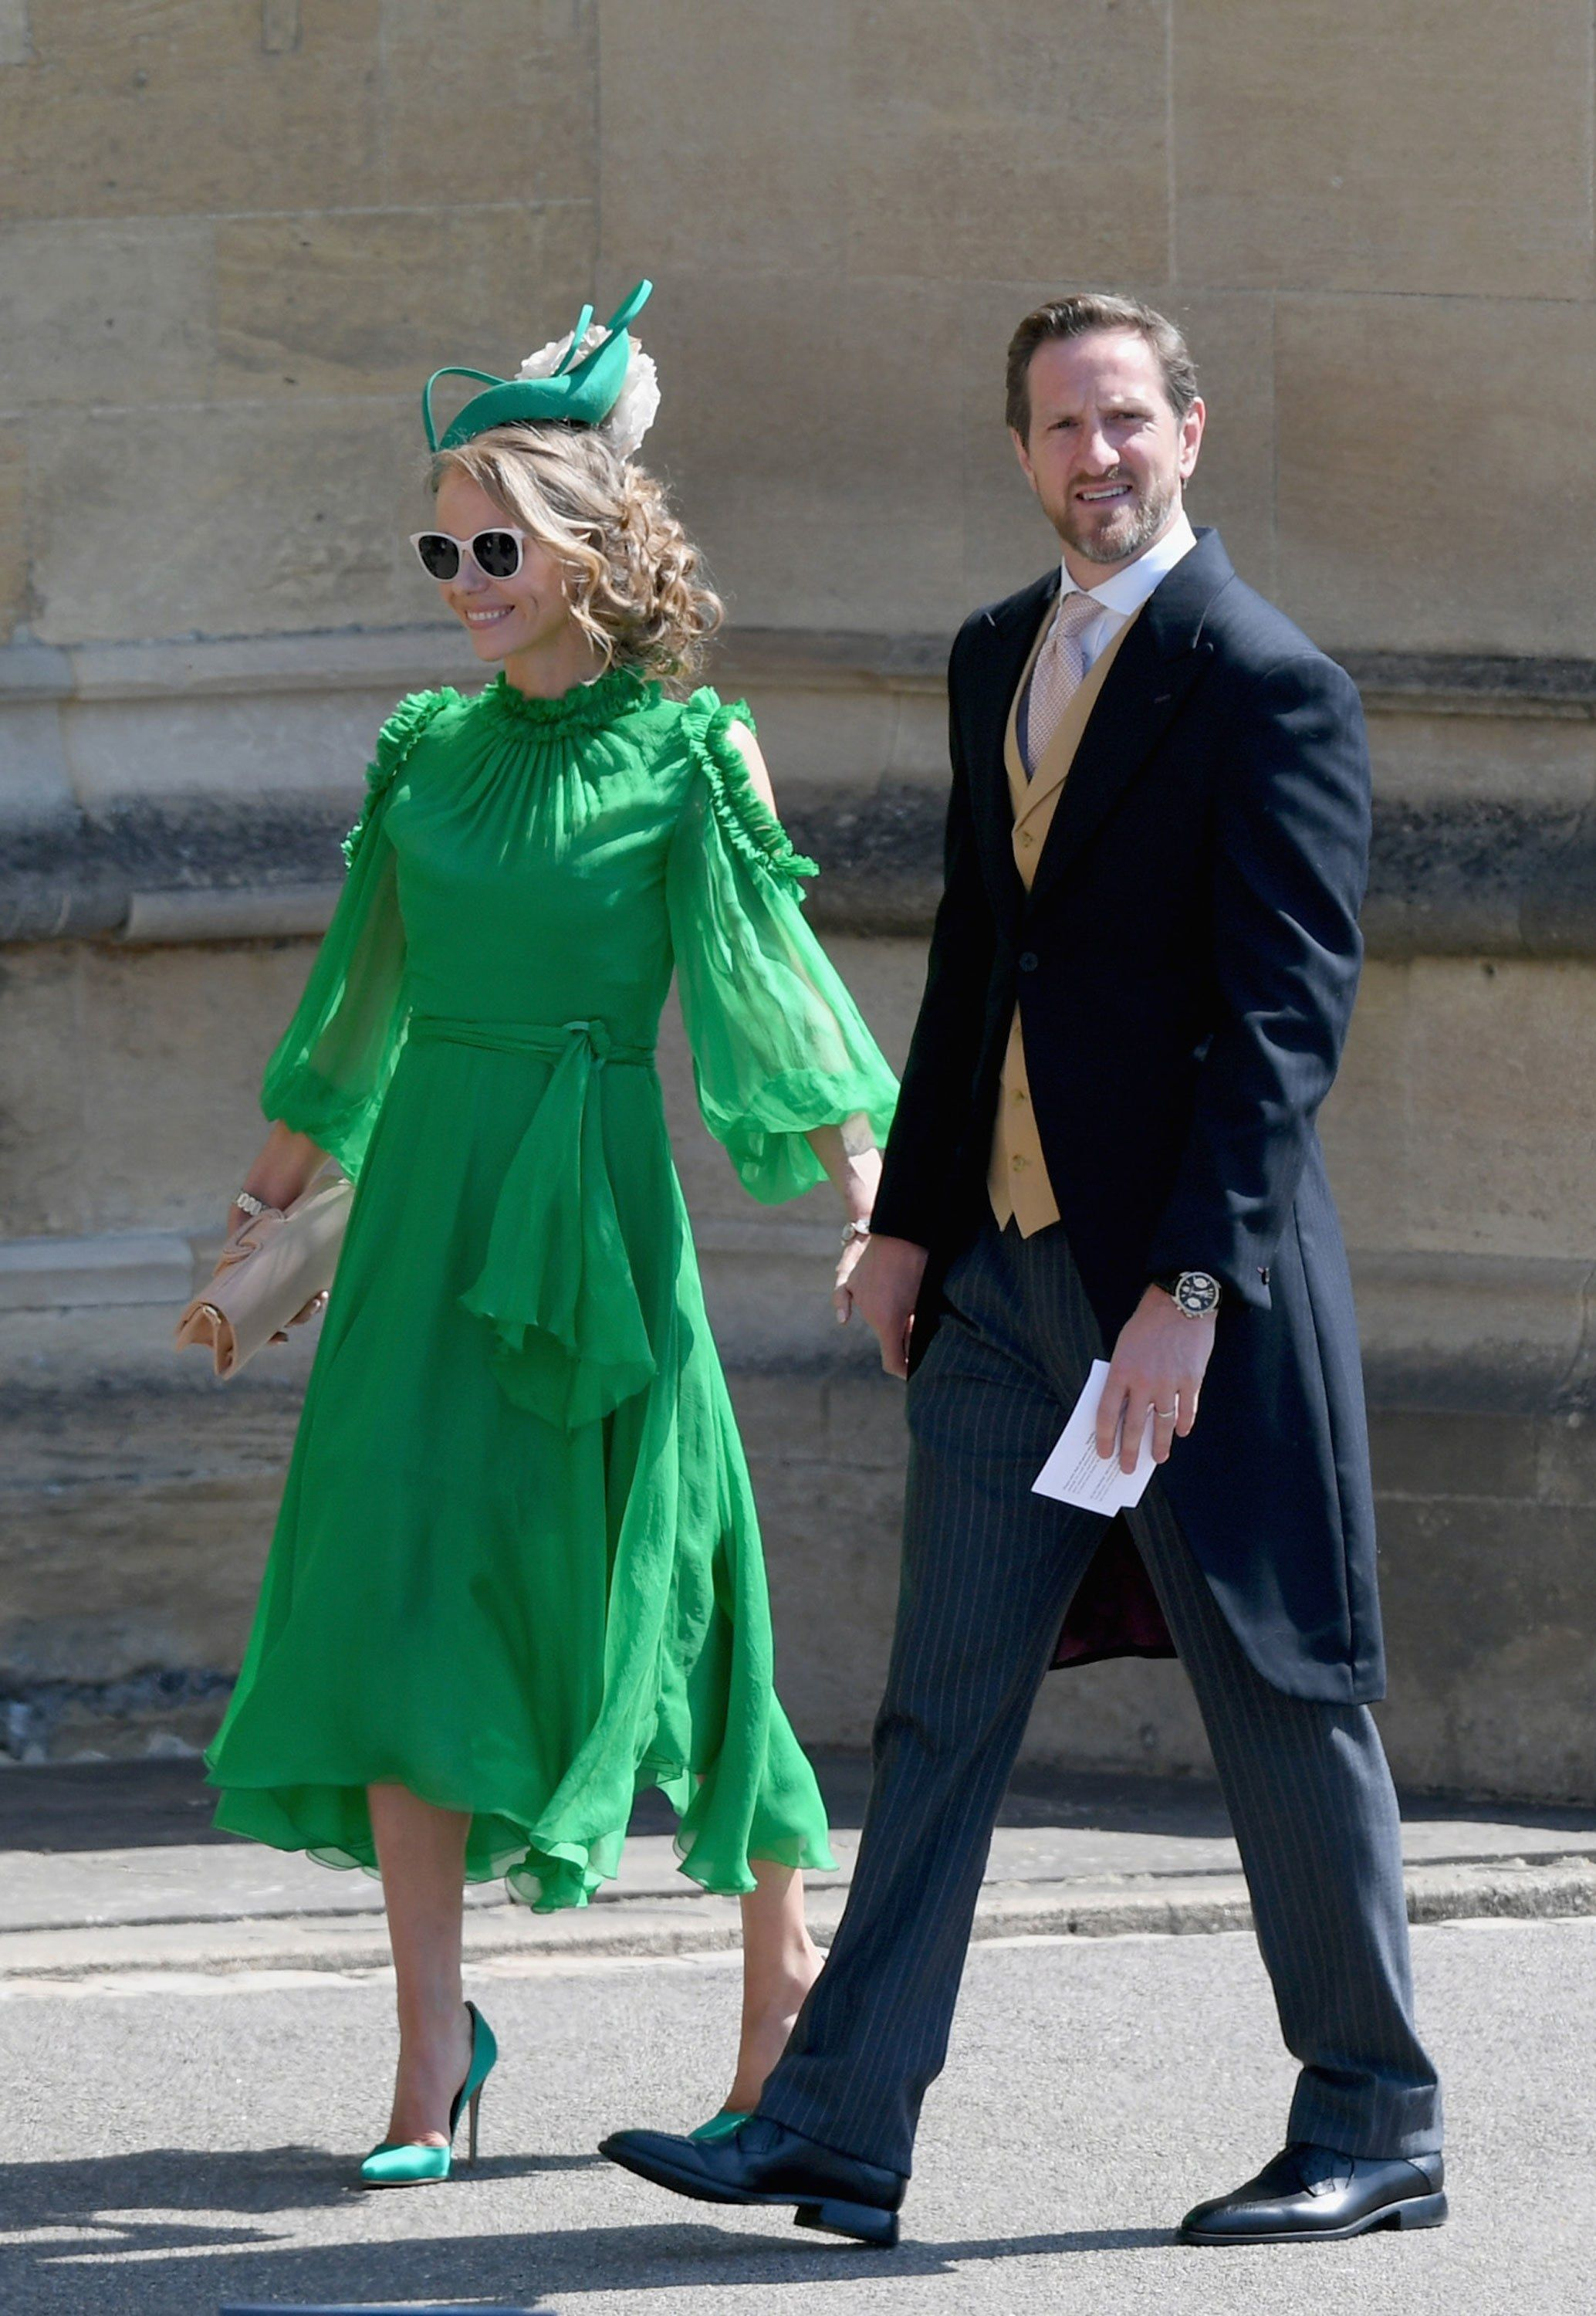 The Must See Moments From The Royal Wedding Royal Wedding Guests Outfits Prince Harry Wedding Guest Outfit [ 3000 x 2068 Pixel ]